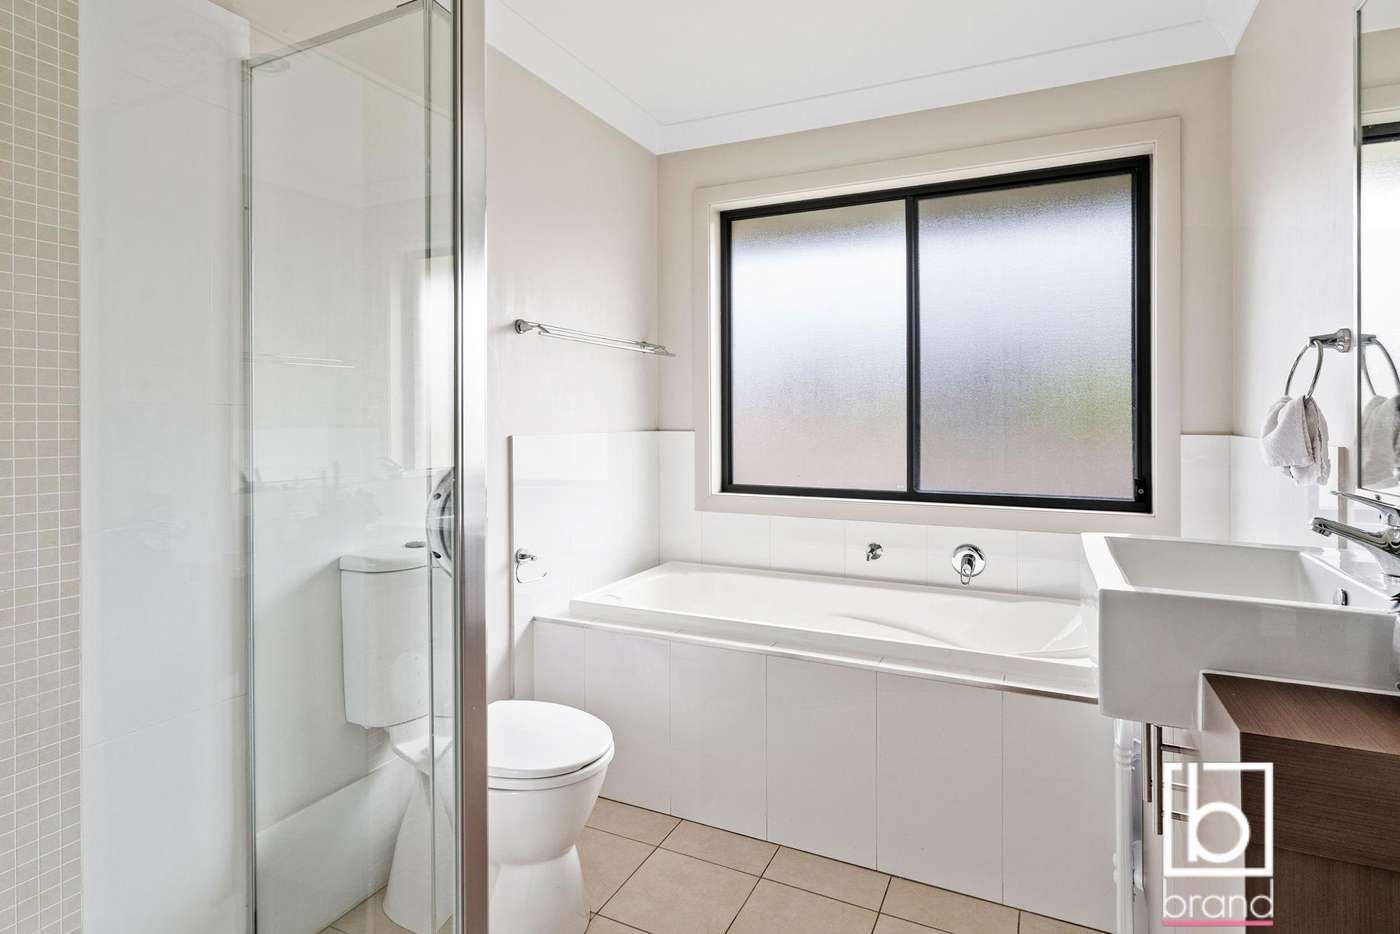 Fifth view of Homely house listing, 2 Yellow Rose Terrace, Hamlyn Terrace NSW 2259